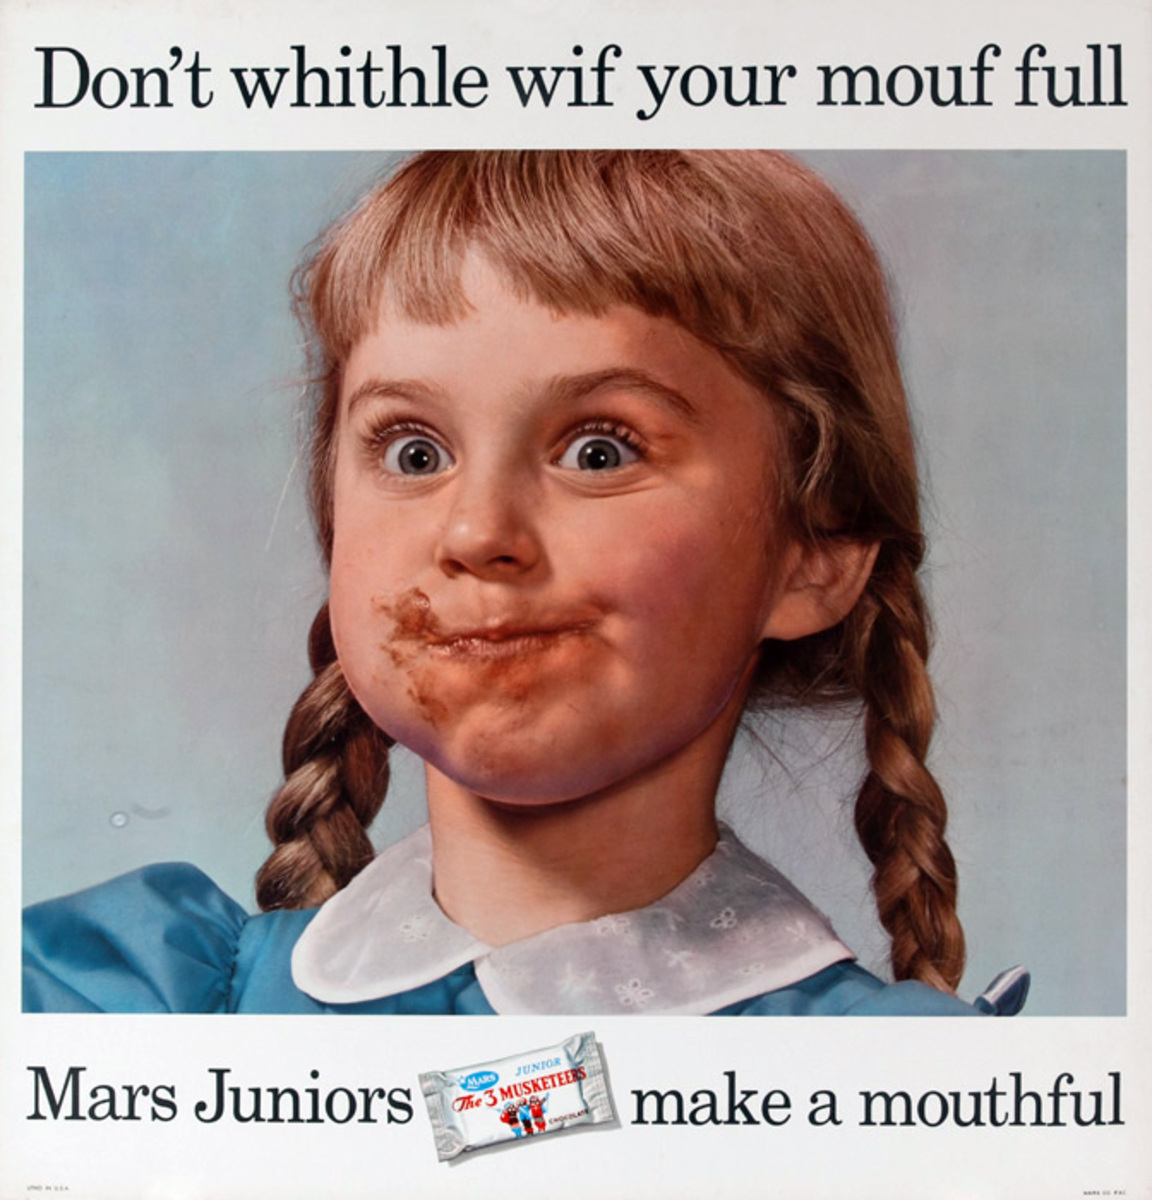 Mars Candy Original Advertising Poster, Don't Whithle wif your mouf full.